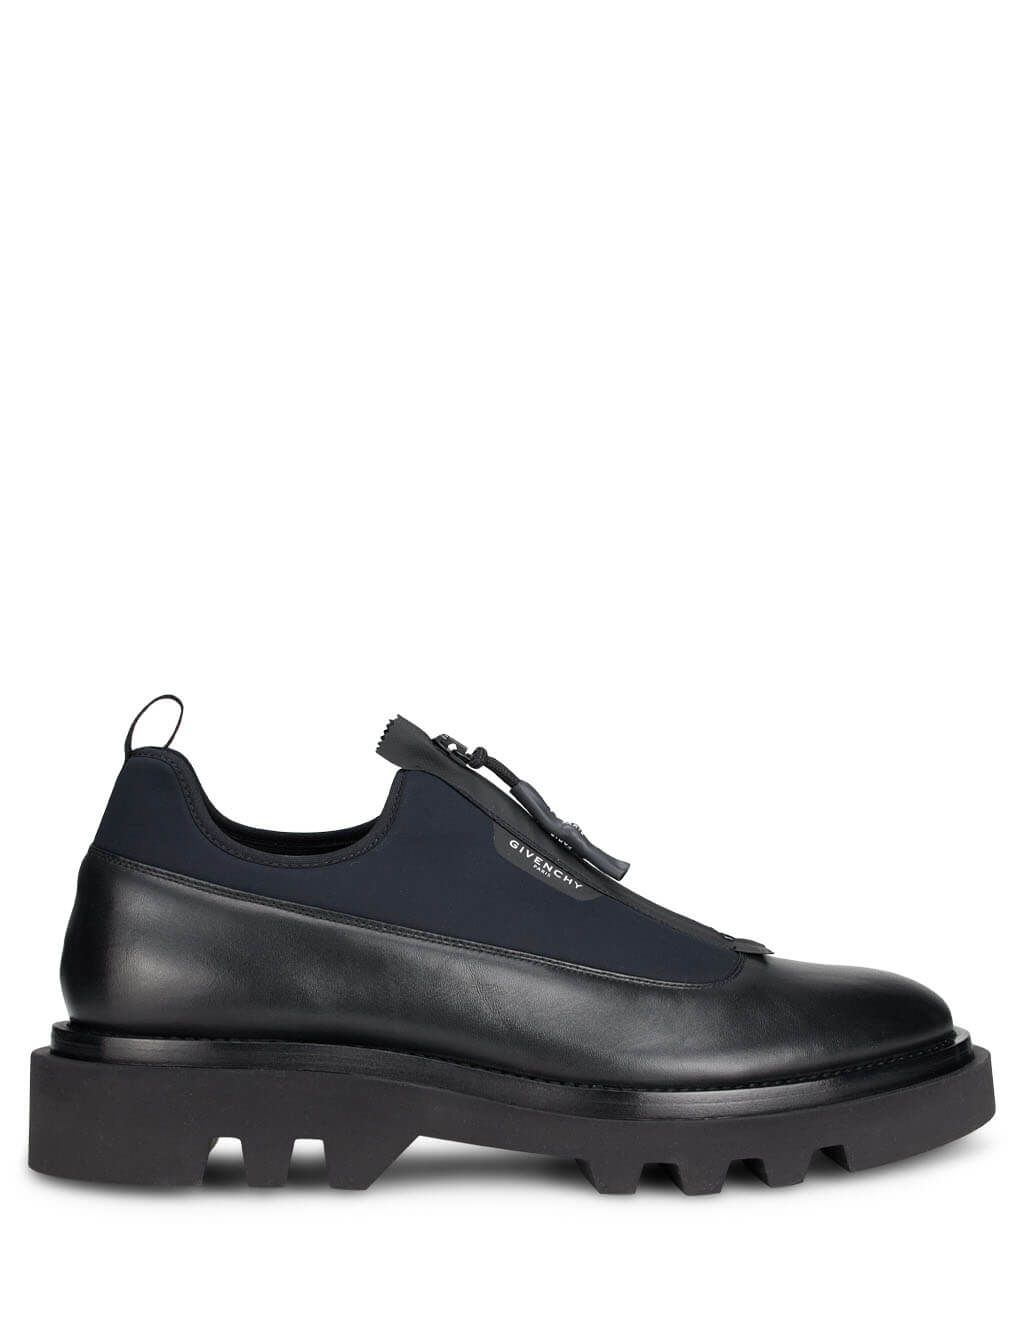 Givenchy Men's Giulio Fashion Black Combat Derby Shoes BH1029H0NN-001